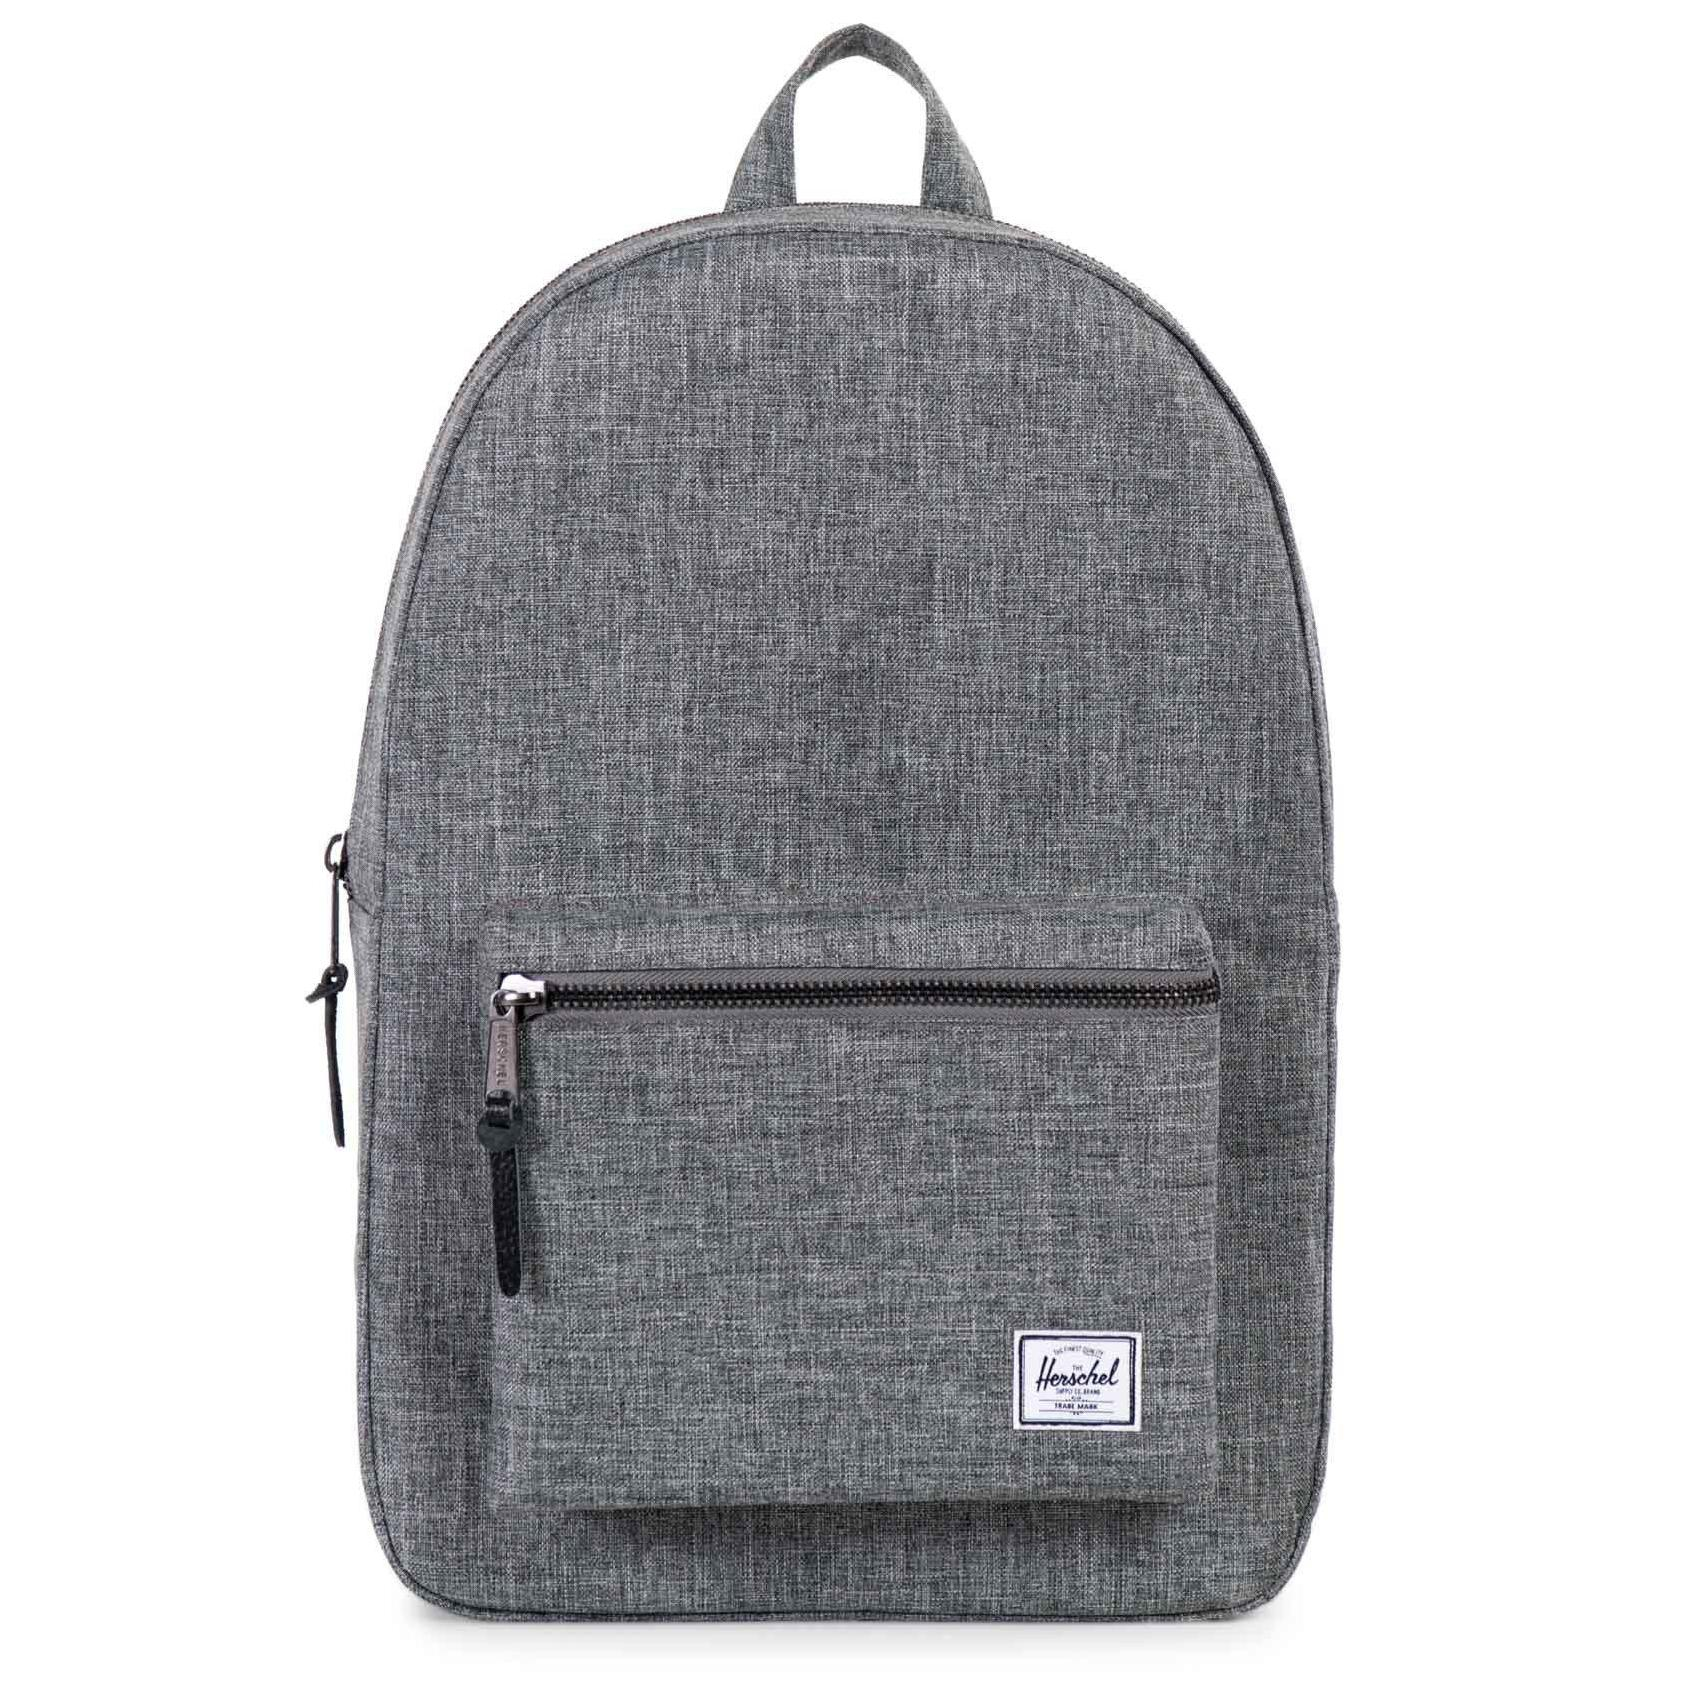 67c9e5f0cb7 Herschel Supply Co. Settlement Backpack